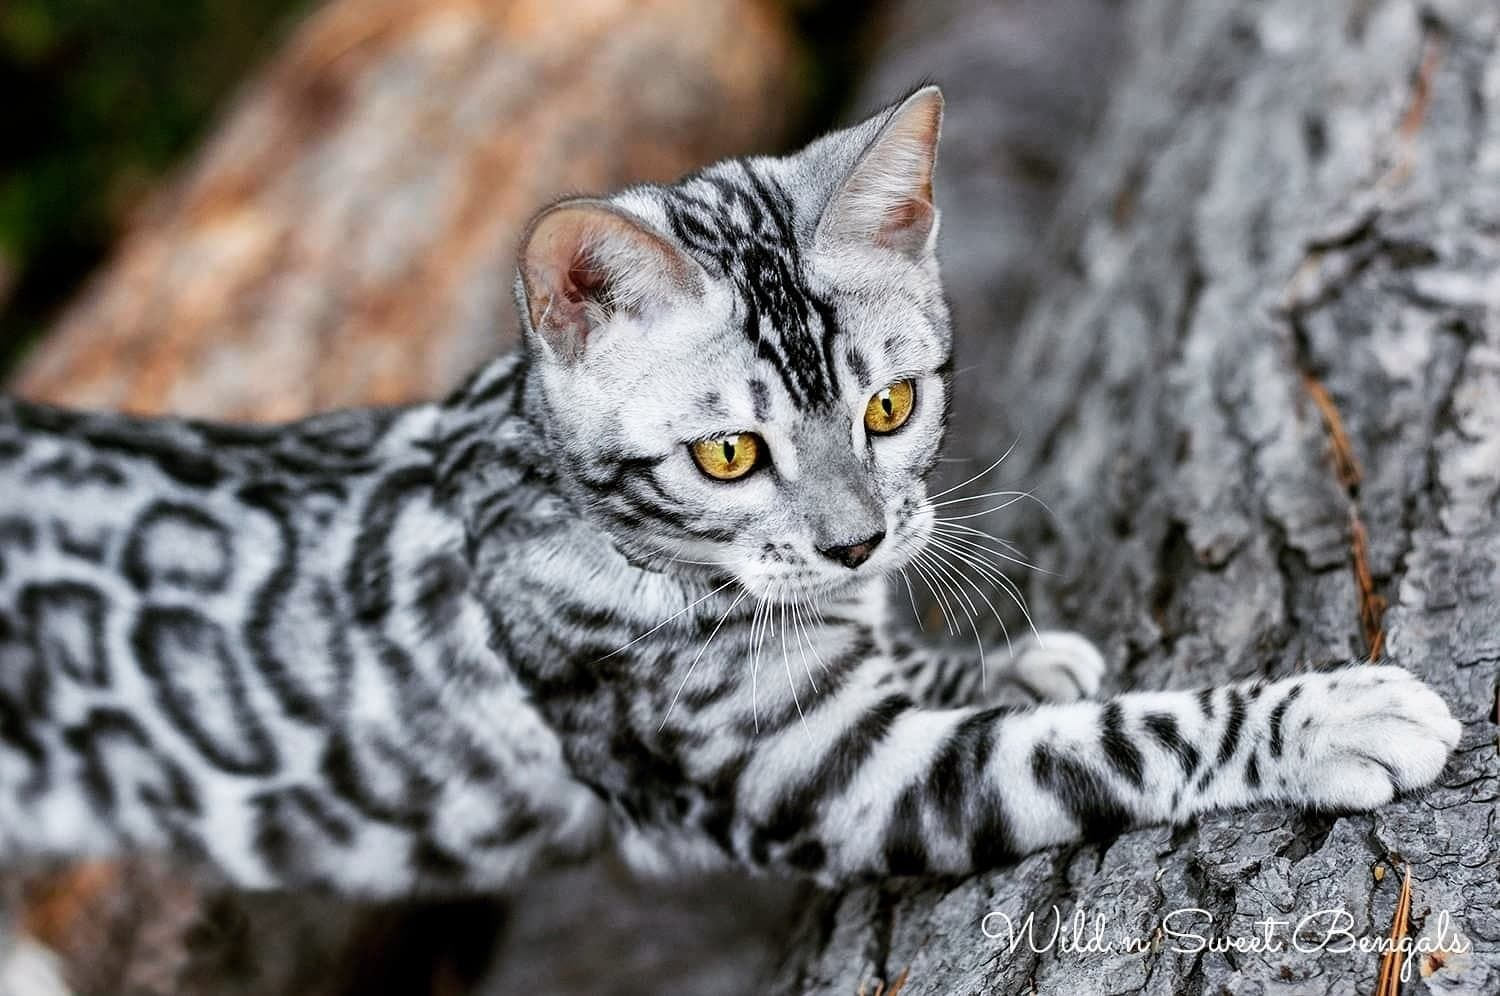 Bengal Kittens Cats For Sale Near Me Wild Sweet Bengals In 2020 Bengal Kitten Bengal Cat Silver Bengal Cat